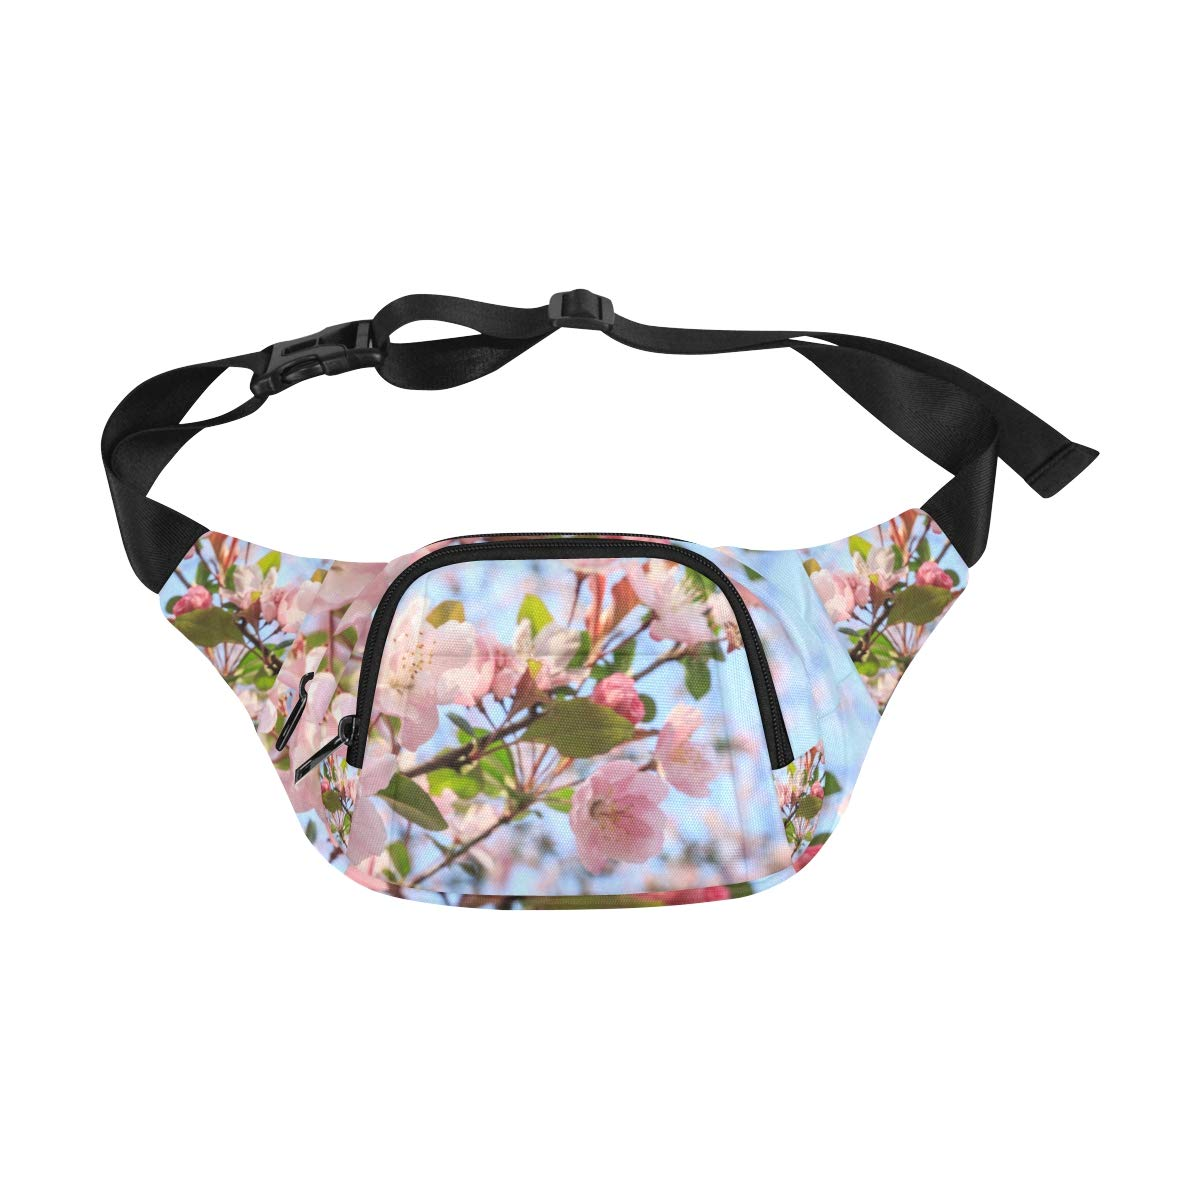 Beautiful Pink Flower In Spring Fenny Packs Waist Bags Adjustable Belt Waterproof Nylon Travel Running Sport Vacation Party For Men Women Boys Girls Kids